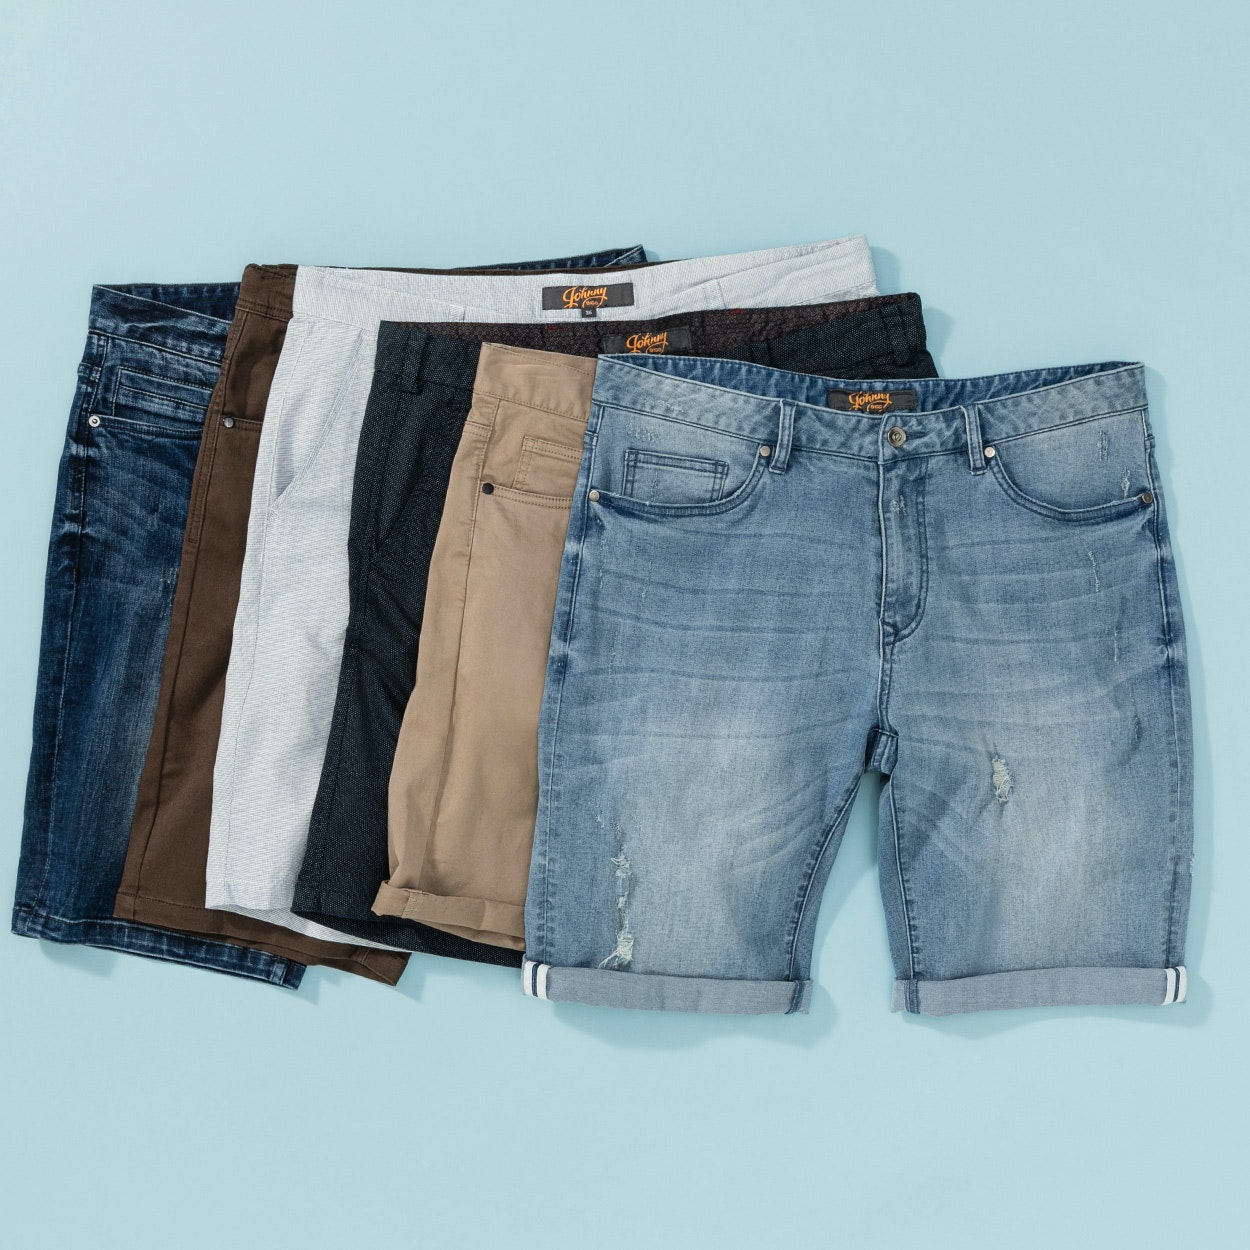 Shorts For All Occasions